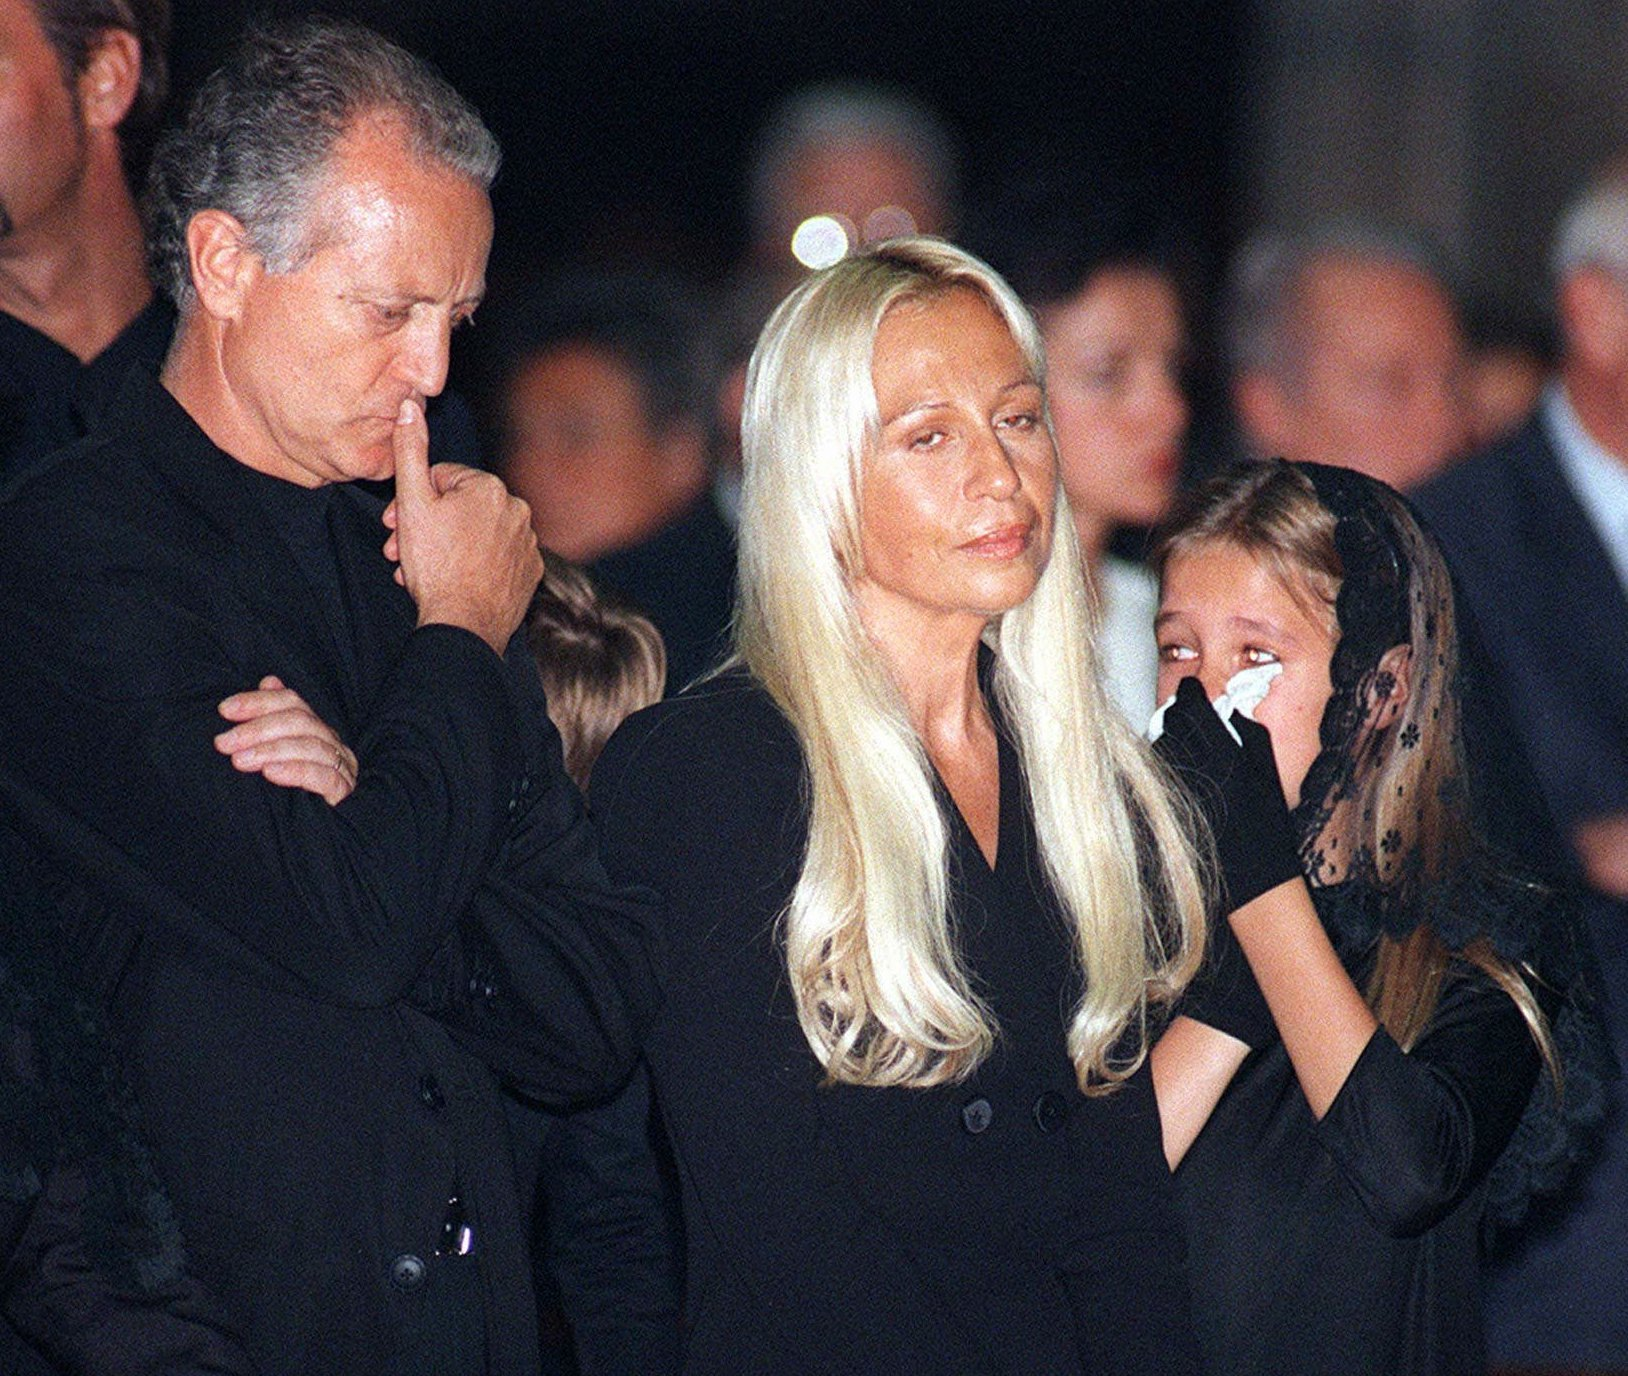 Santo Versace, left, his sister Donatella and her daughter Allegra take part in a memorial for their brother and uncle, slain Italian fashion designer Gianni Versace, at the memorial mass inside Milan's gothic cathedral Tuesday, July 22, 1997.  (AP Photo/Luca Bruno)